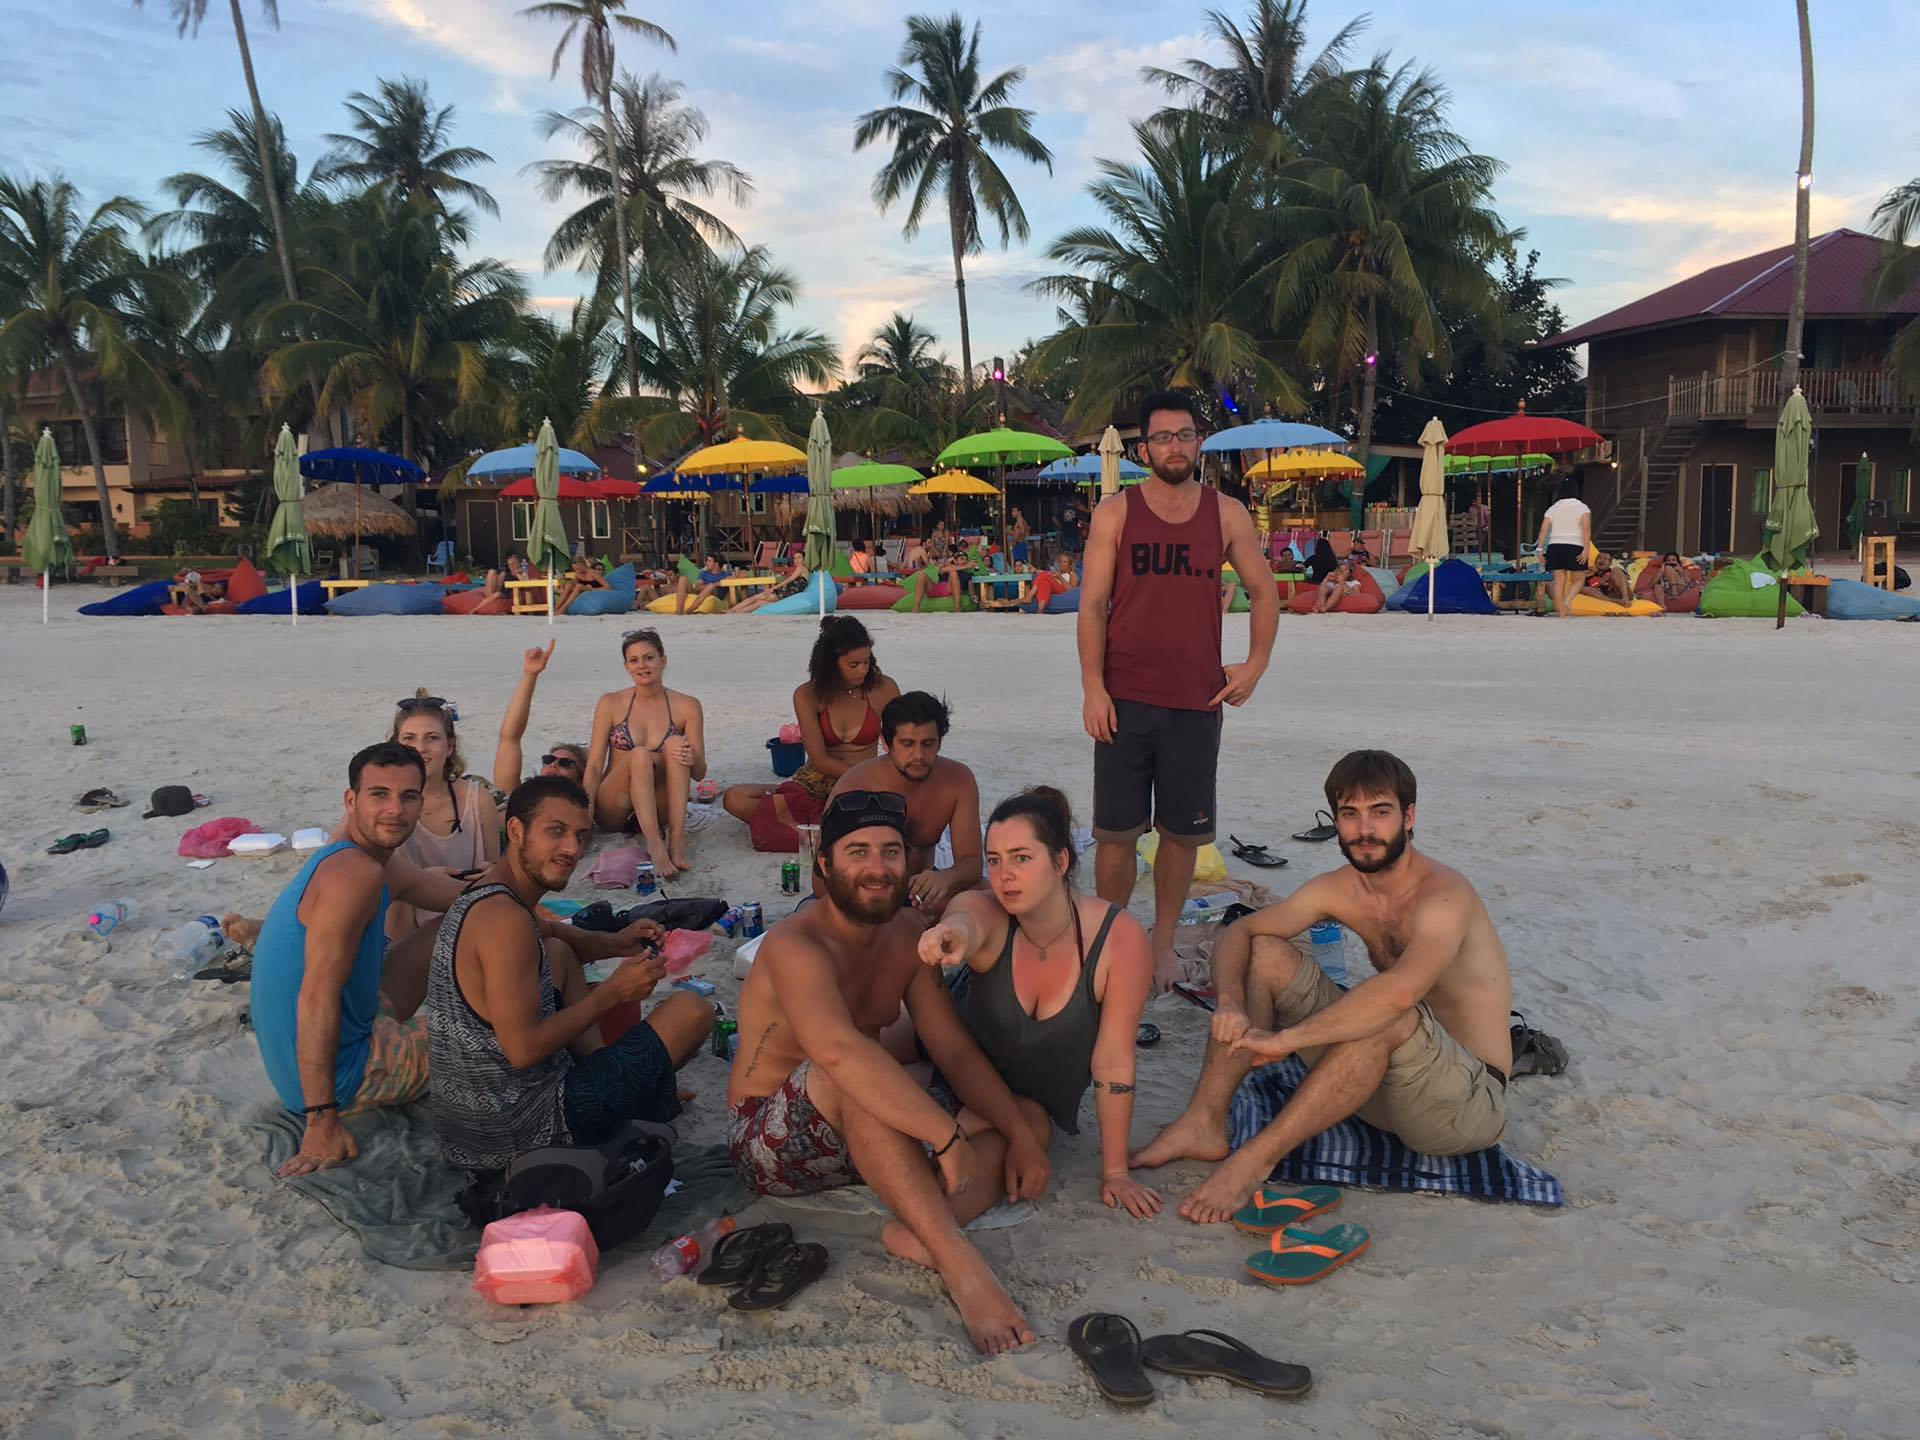 The Chicken Gang gets some downtime to catch the sunset on Cenang beach.